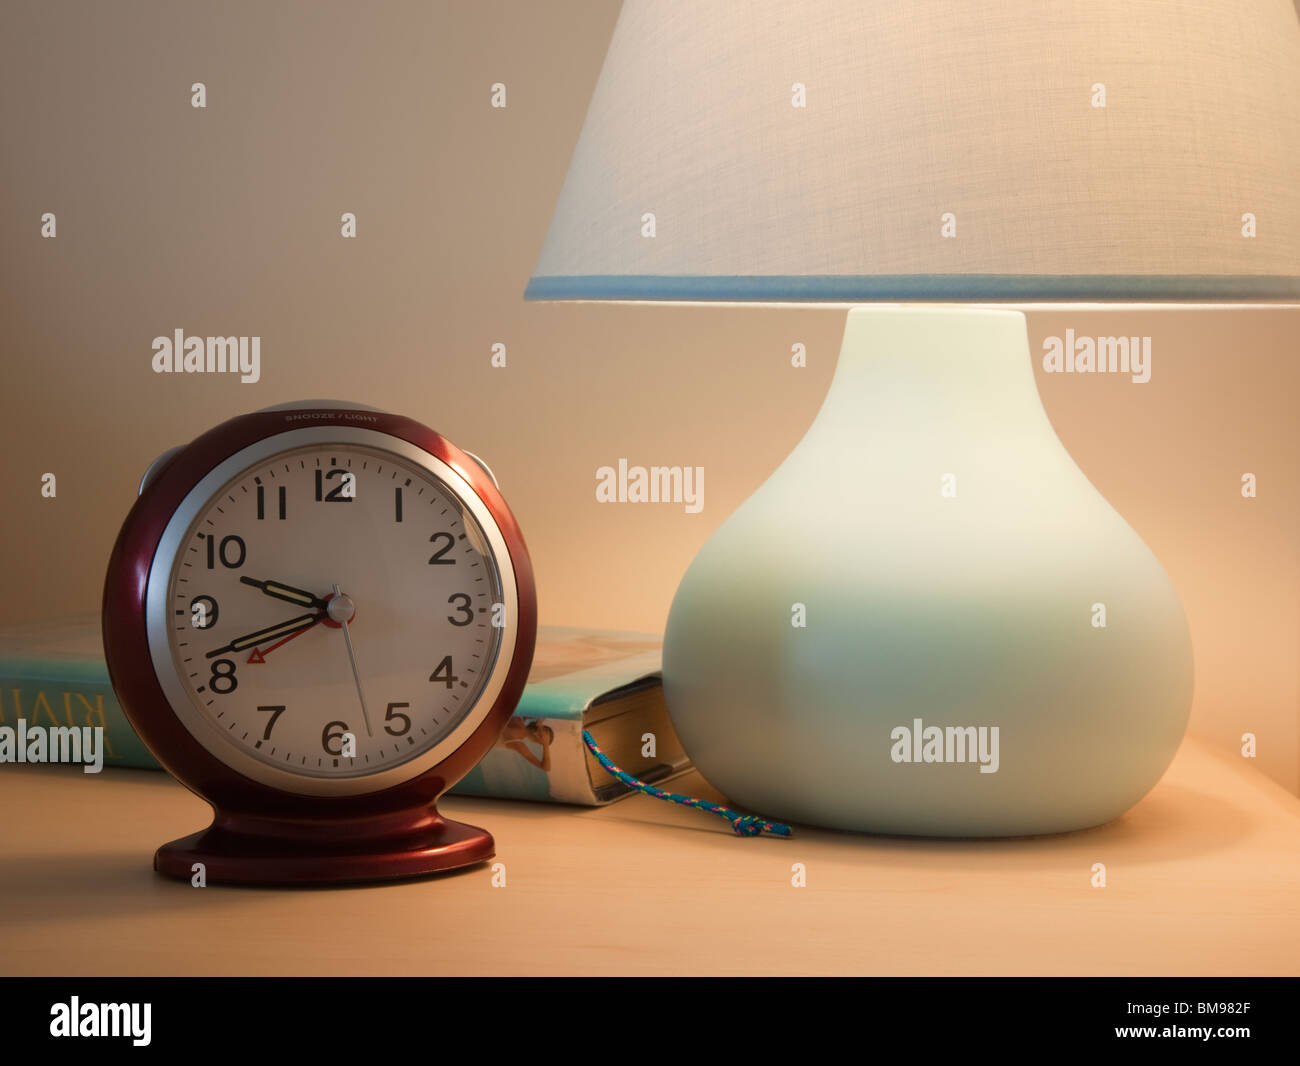 Bedside Table Clocks Close Up Of An Alarm Clock With Lit Bedside Table Lamp And